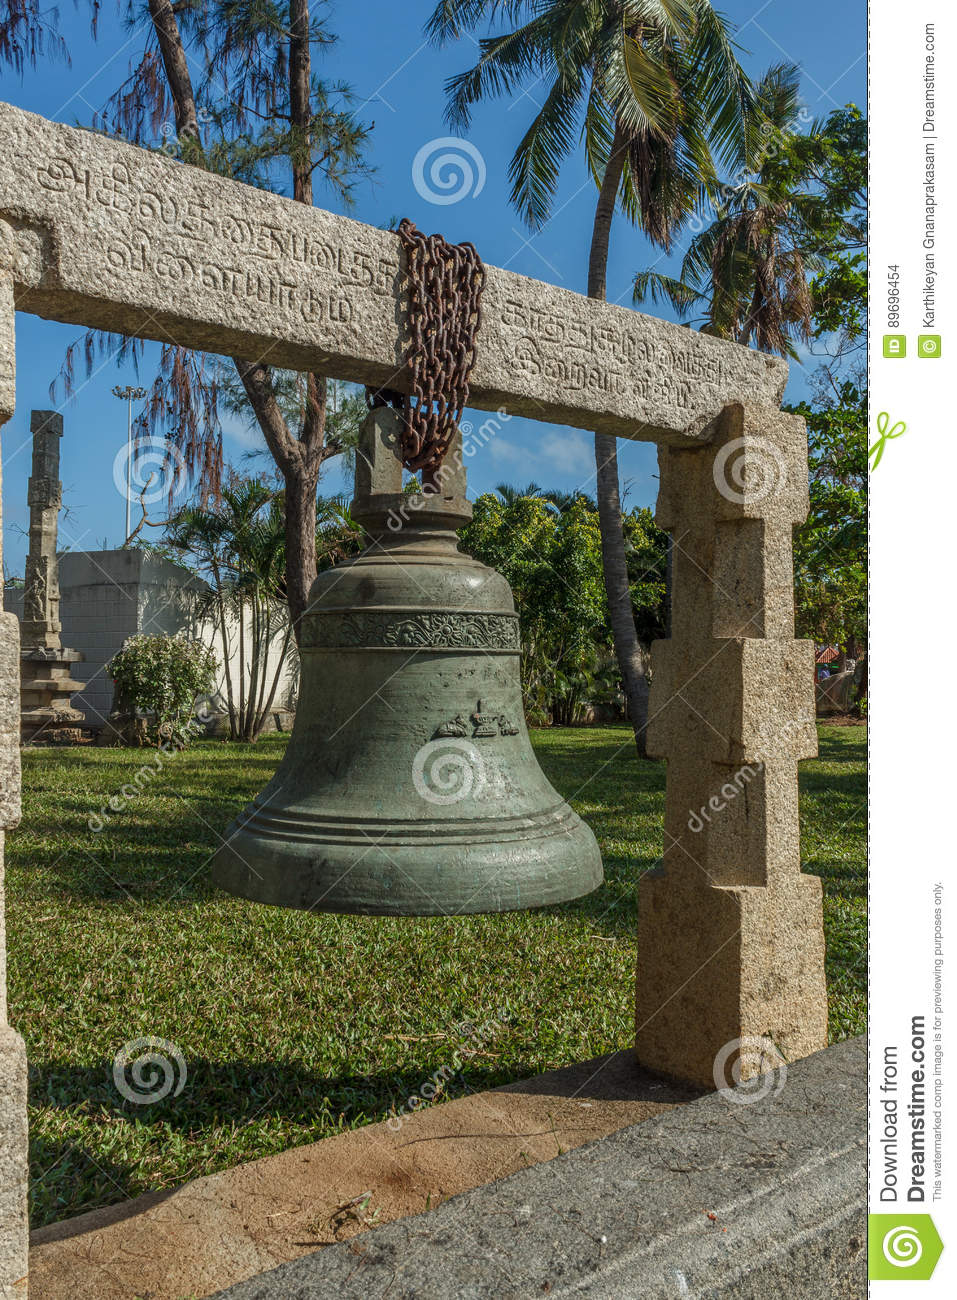 Ancient Big Bronze And Iron Bell With Carvings Hanging From A